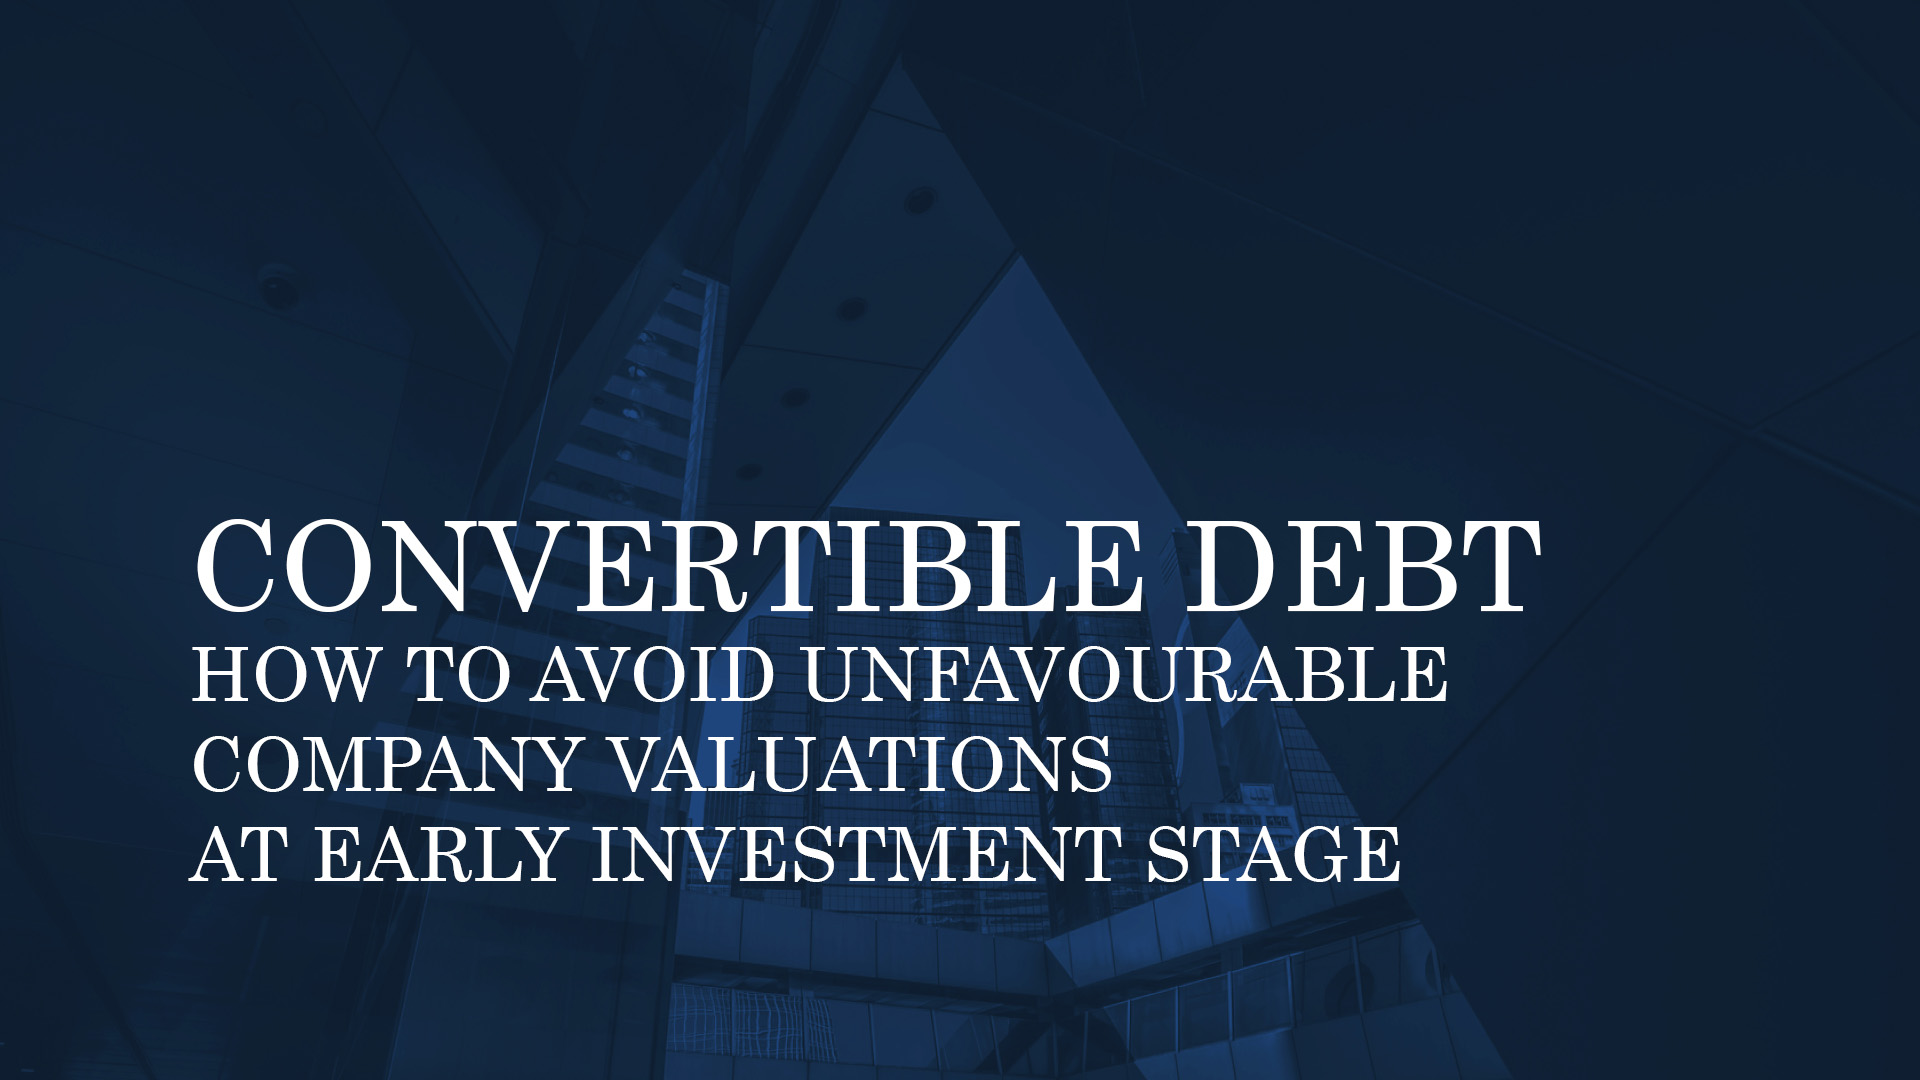 CONVERTIBLE DEBT IN POLAND. HOW TO AVOID UNFAVOURABLE COMPANY VALUATIONS AT EARLY INVESTMENT STAGE